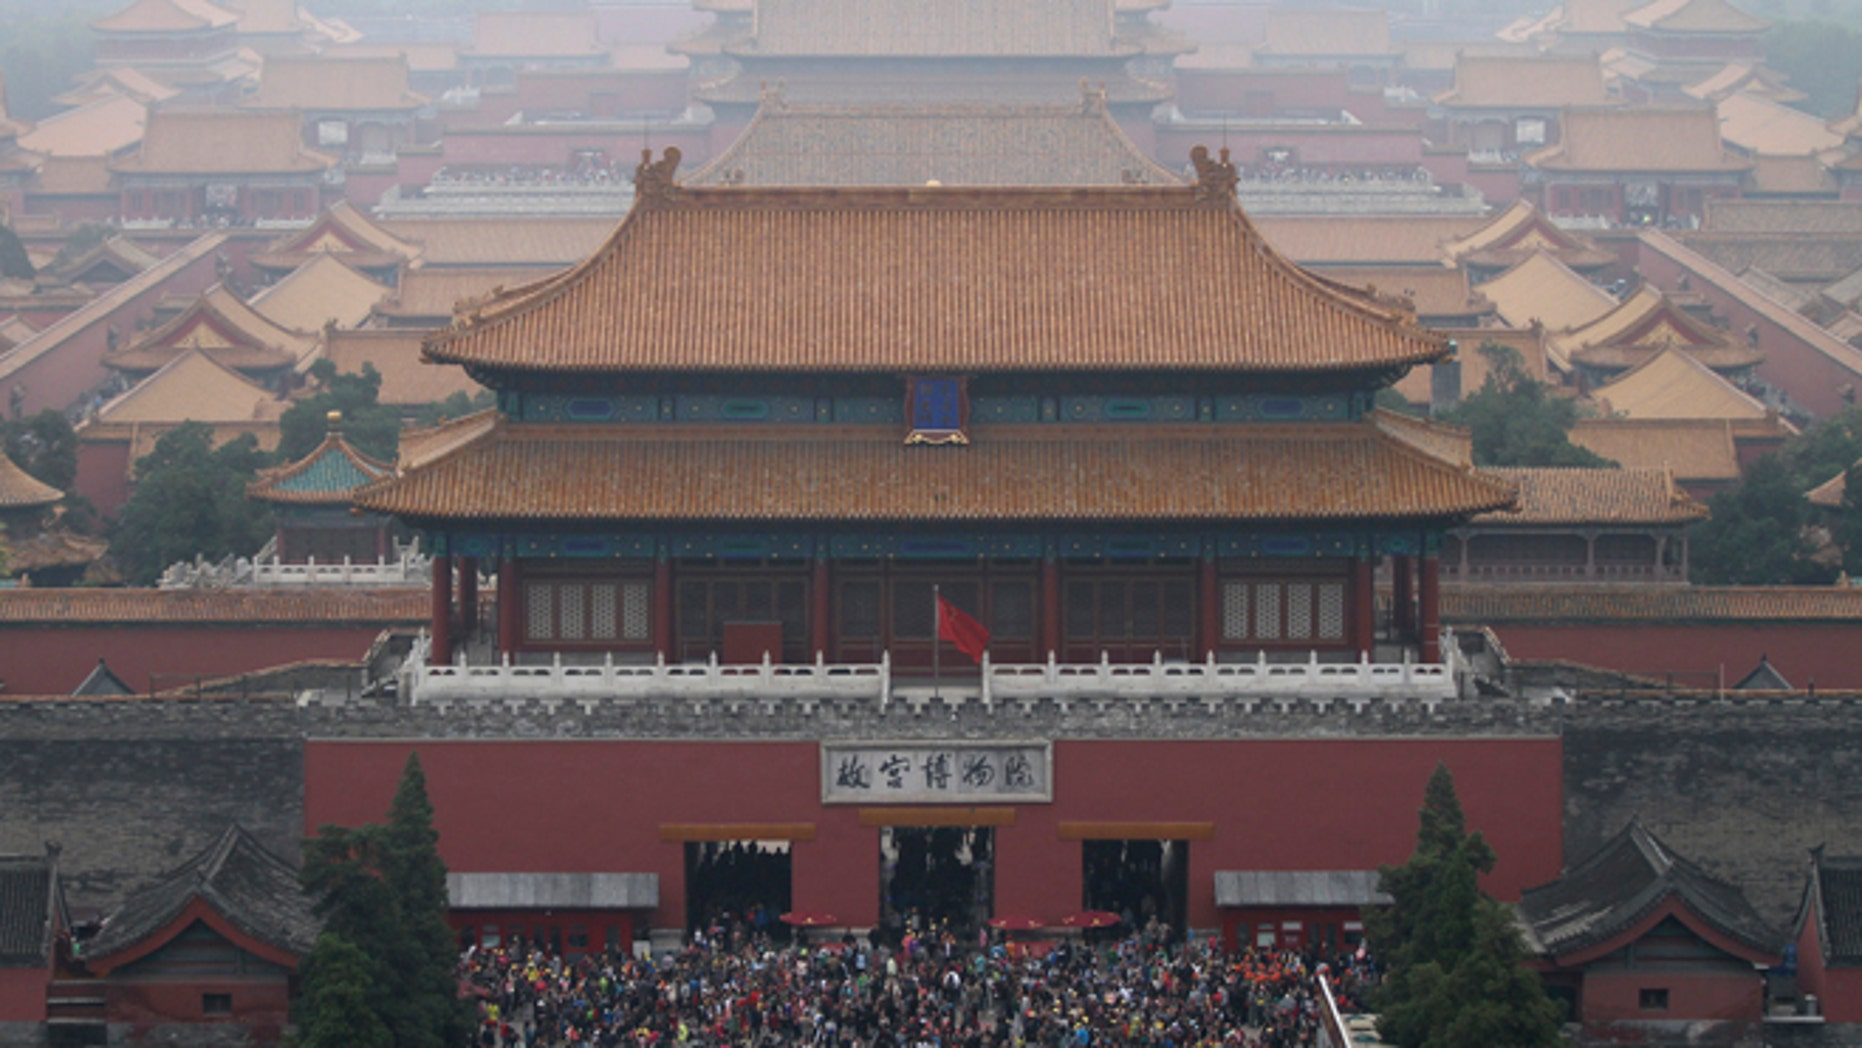 This Oct. 3, 2014 file photo shows tourists at the Forbidden City in Beijing, China.